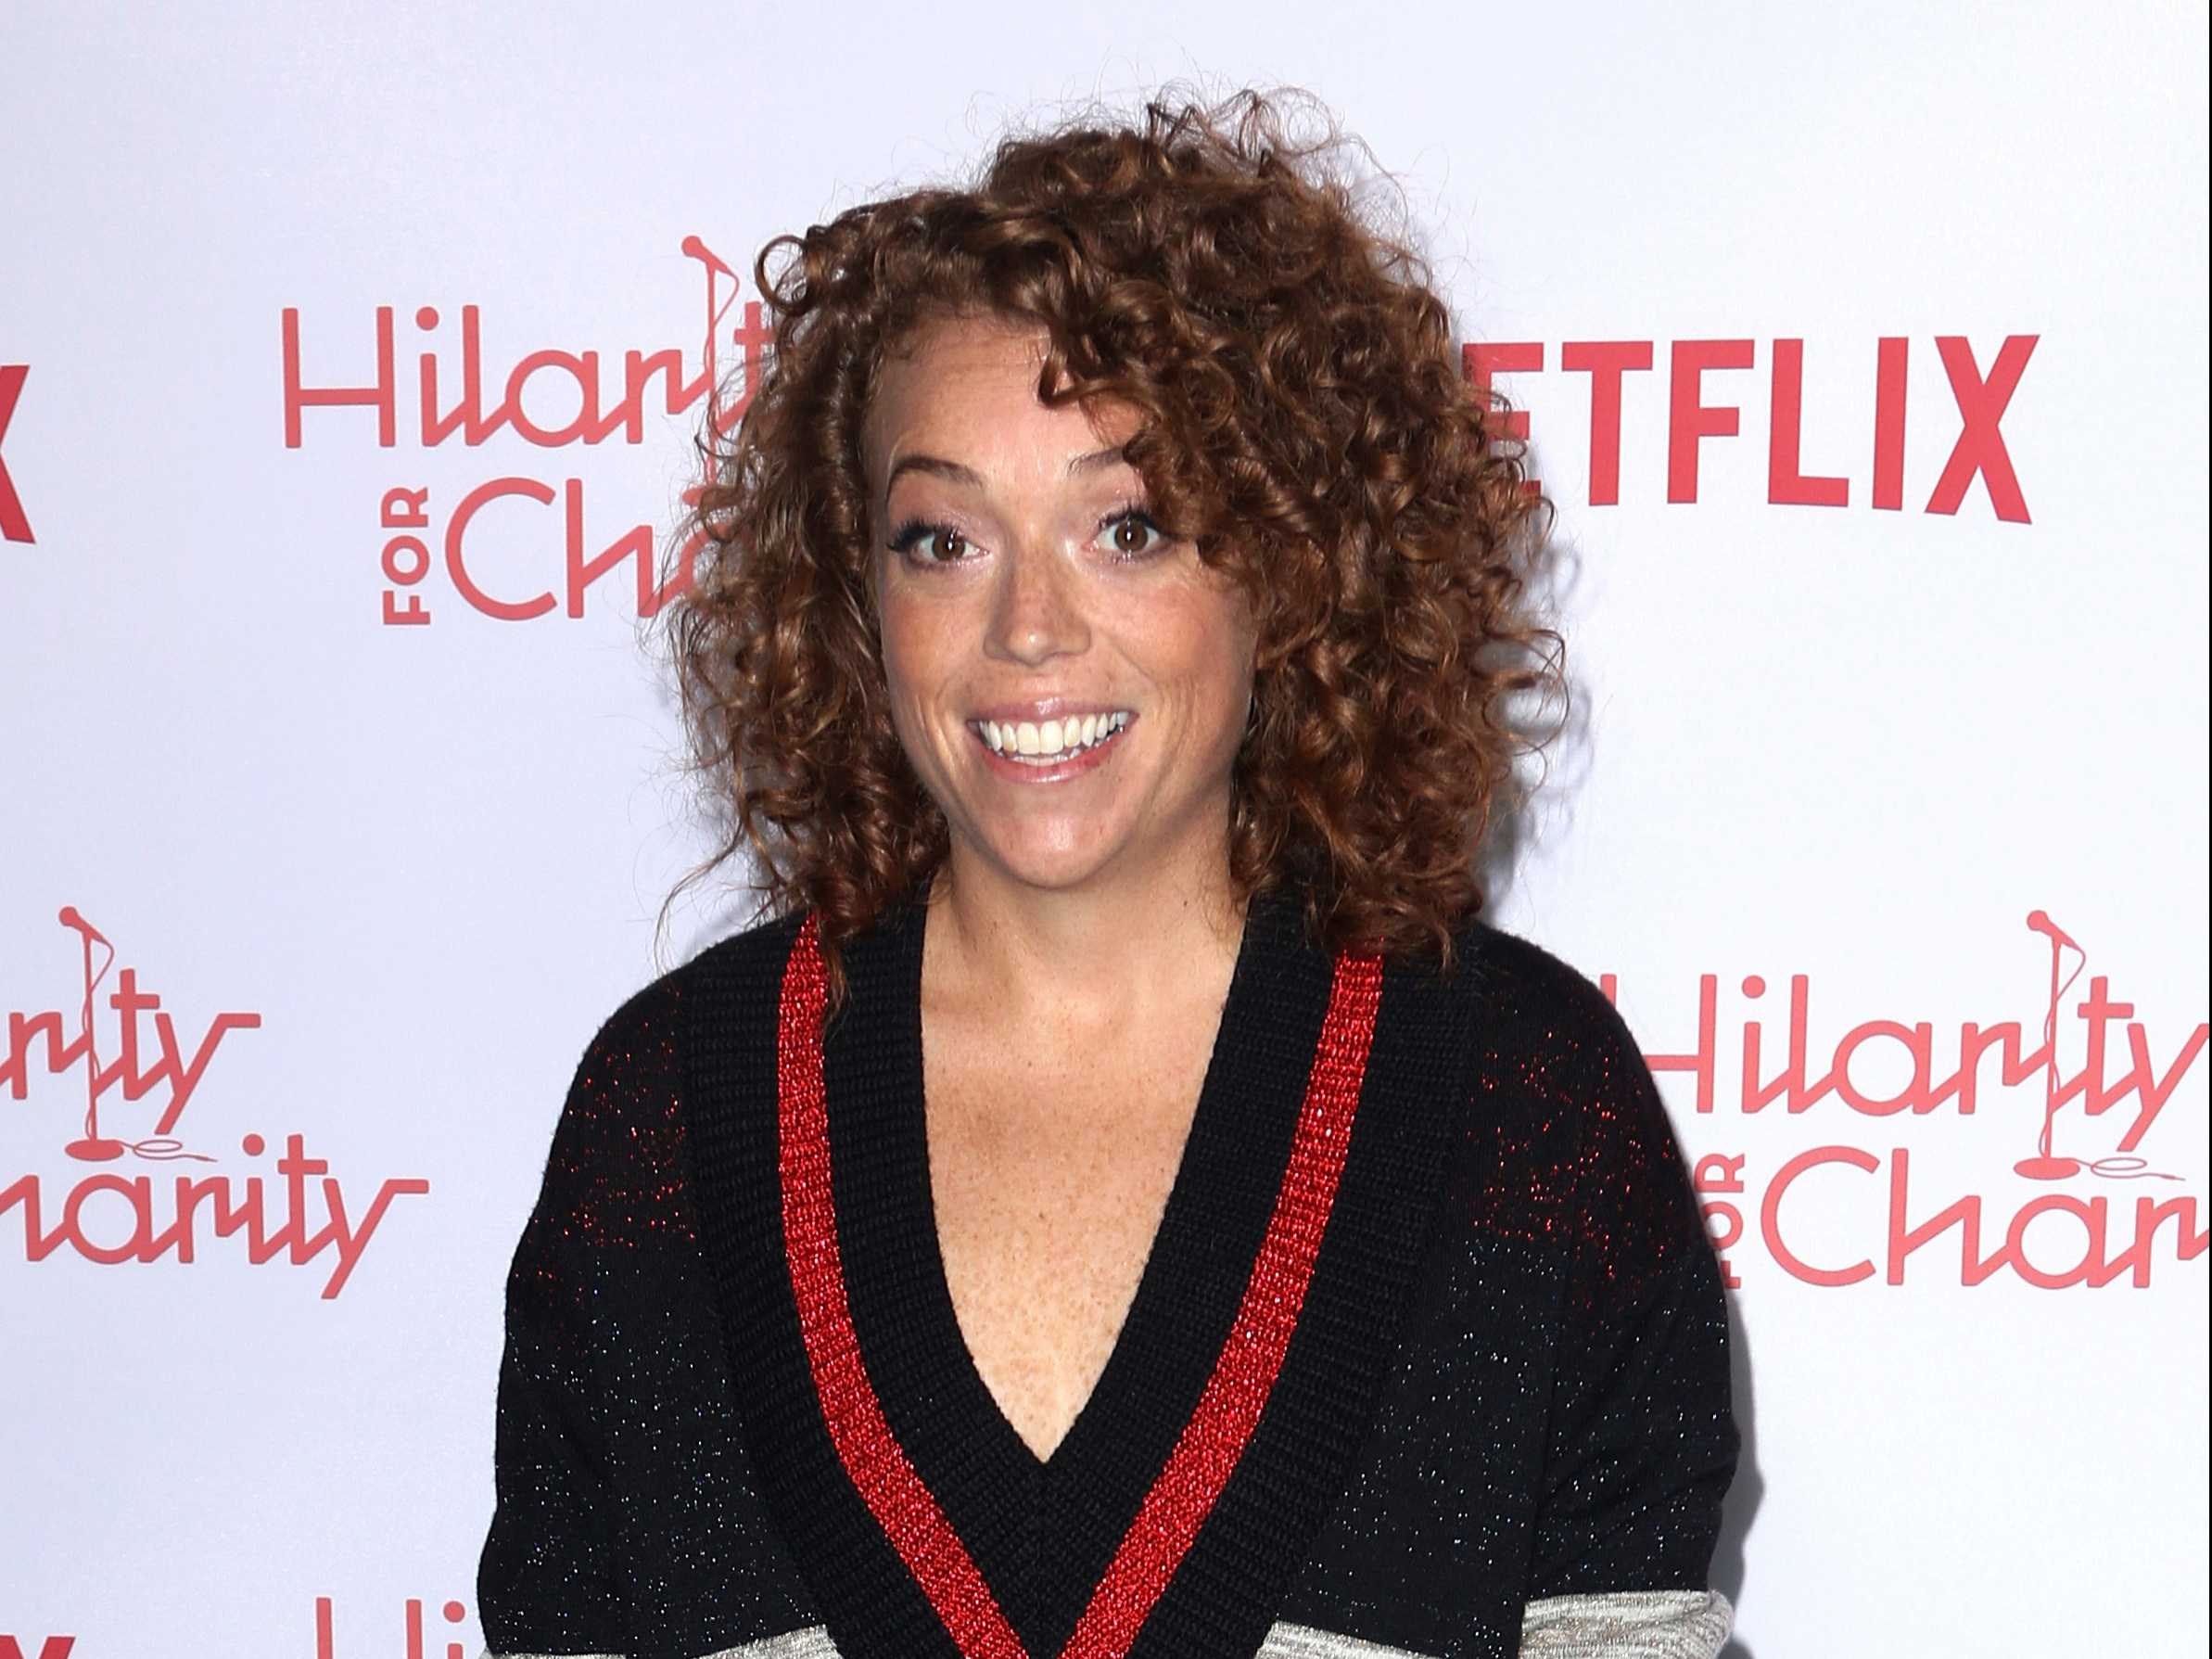 Welcome to the Partisan Fury, Michelle Wolf